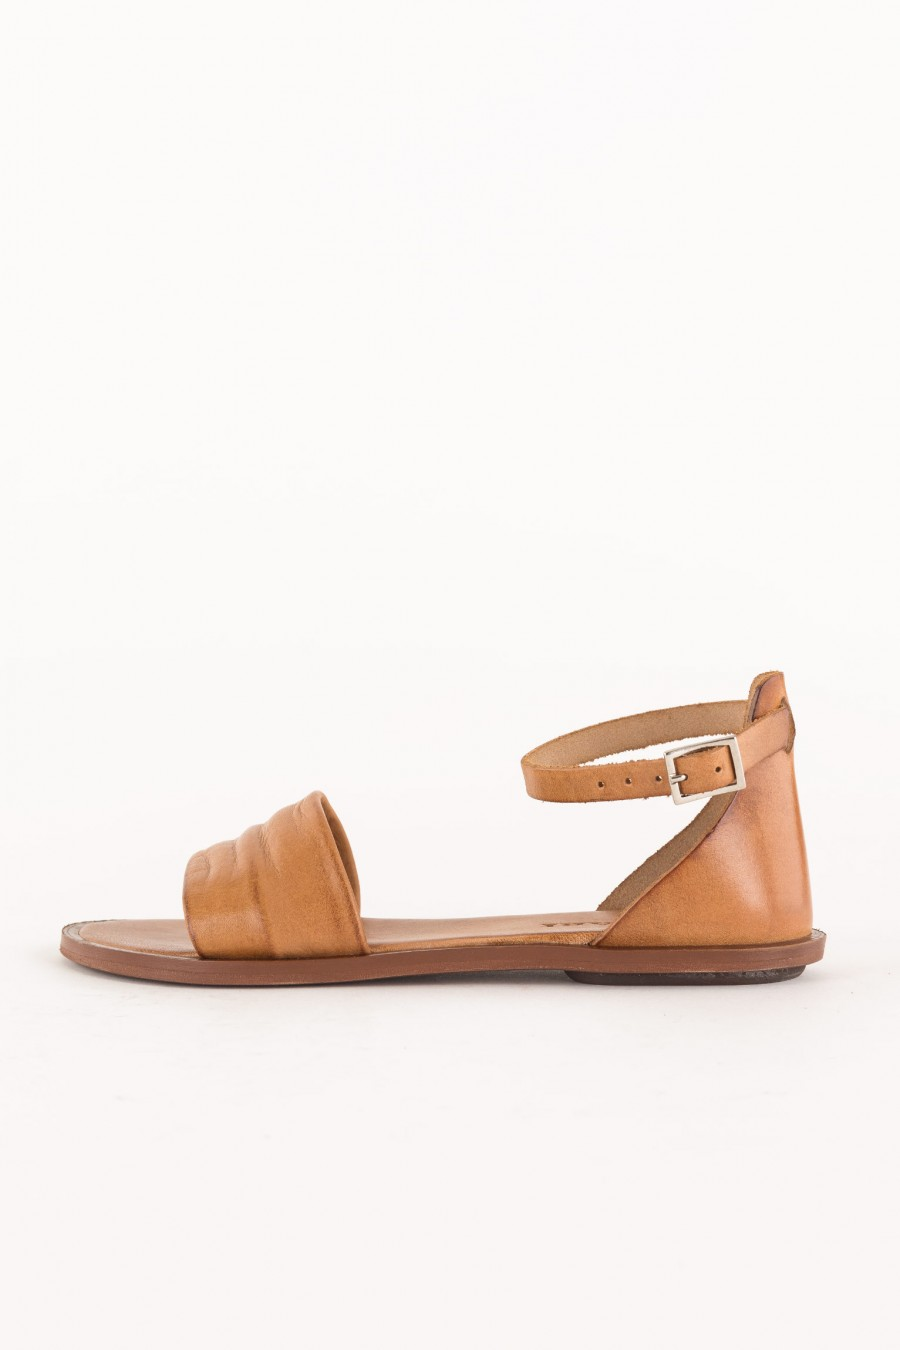 sandal with pleat on the strap